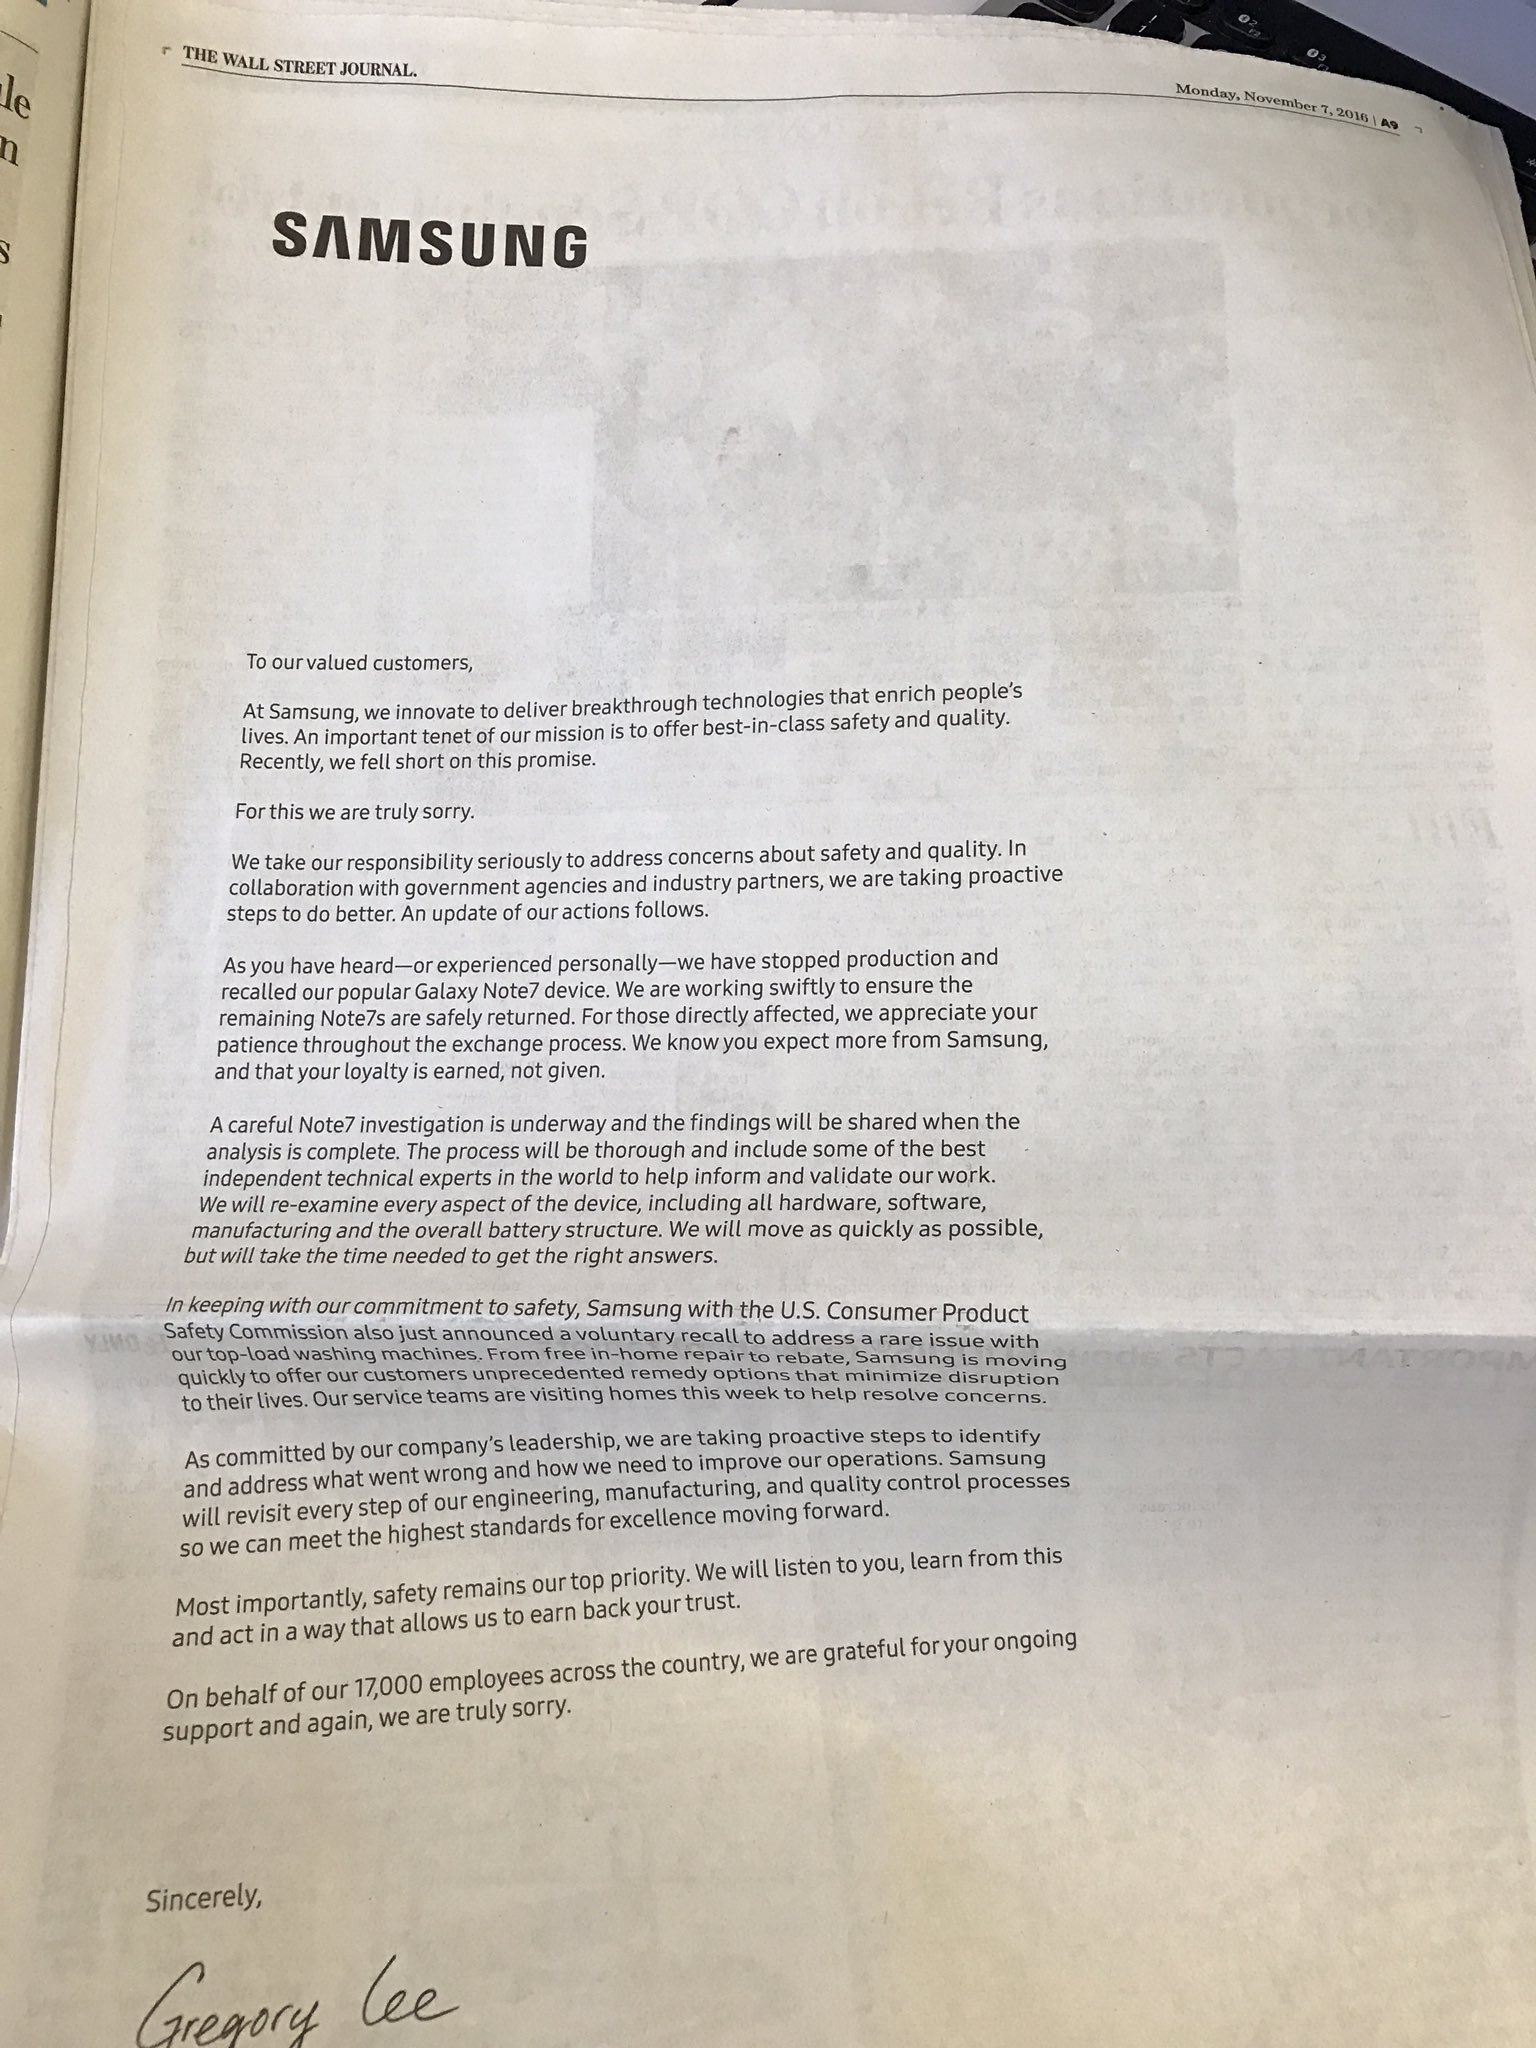 Samsung NOte 7 apology ad WSJ